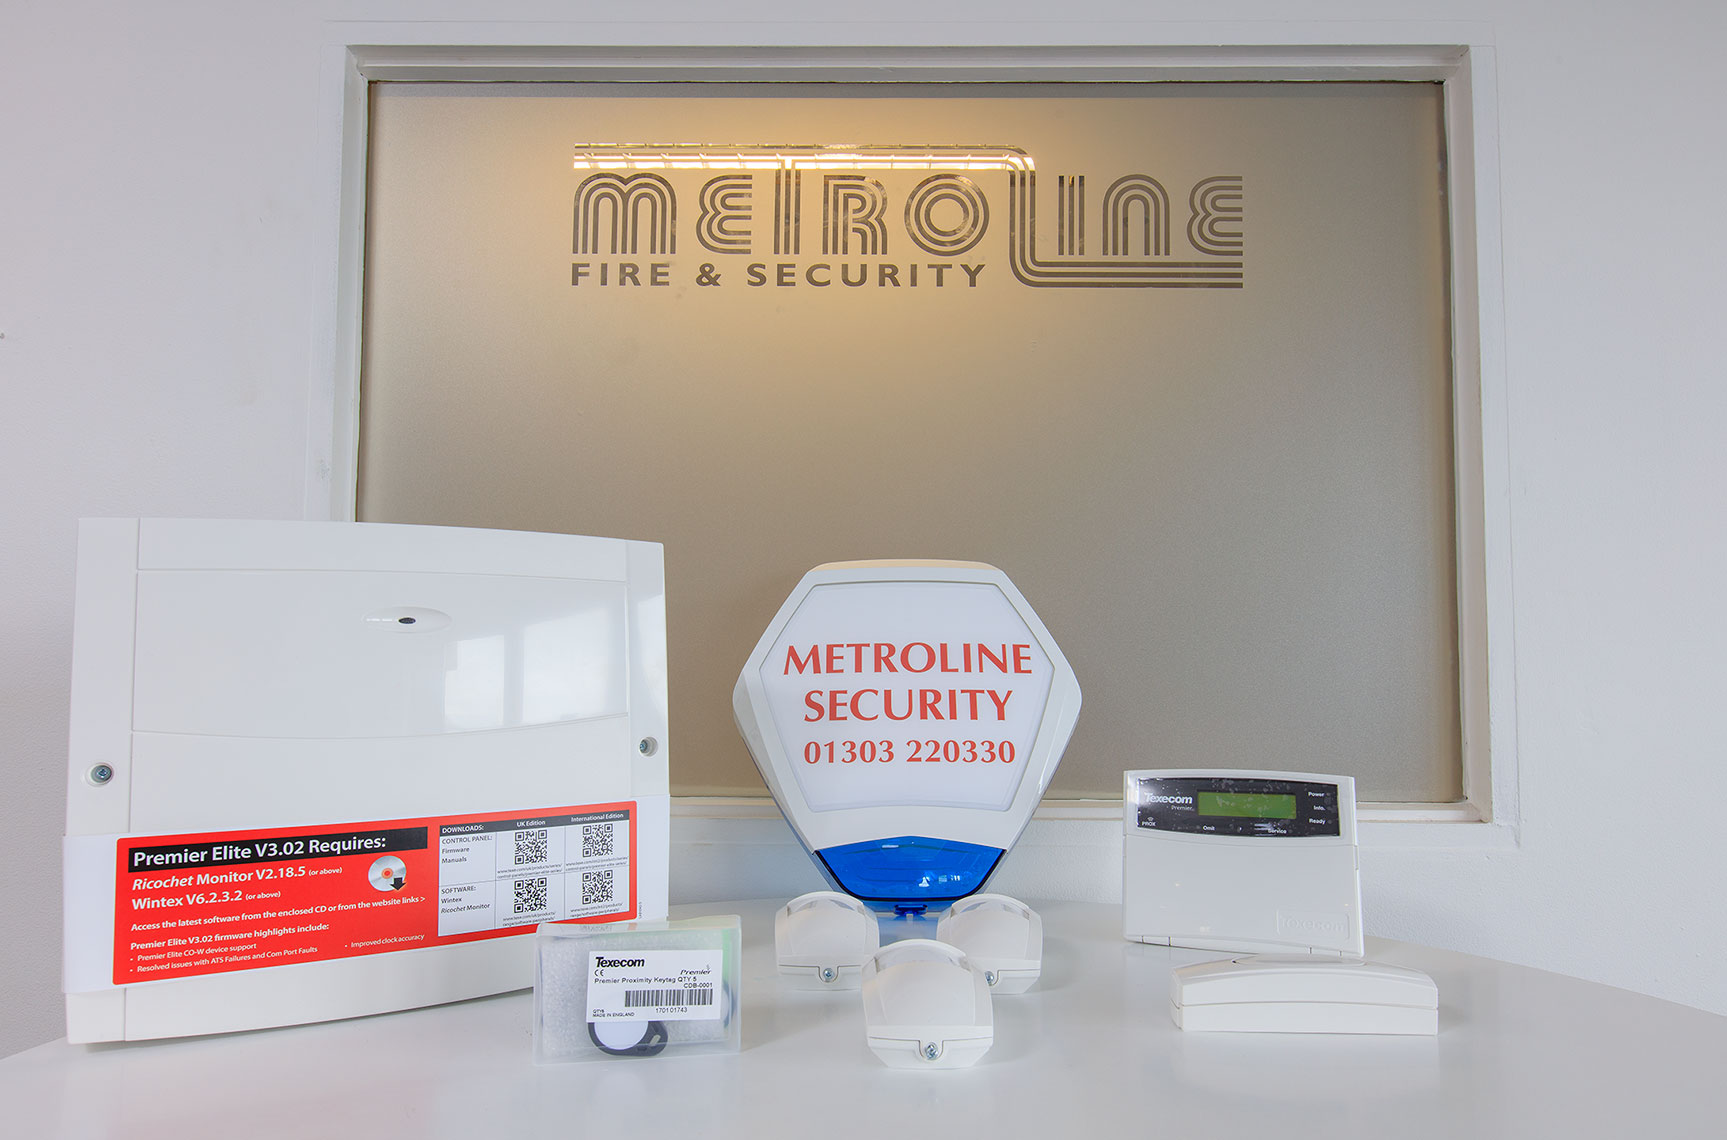 Security entrance system products displayed on table in company office